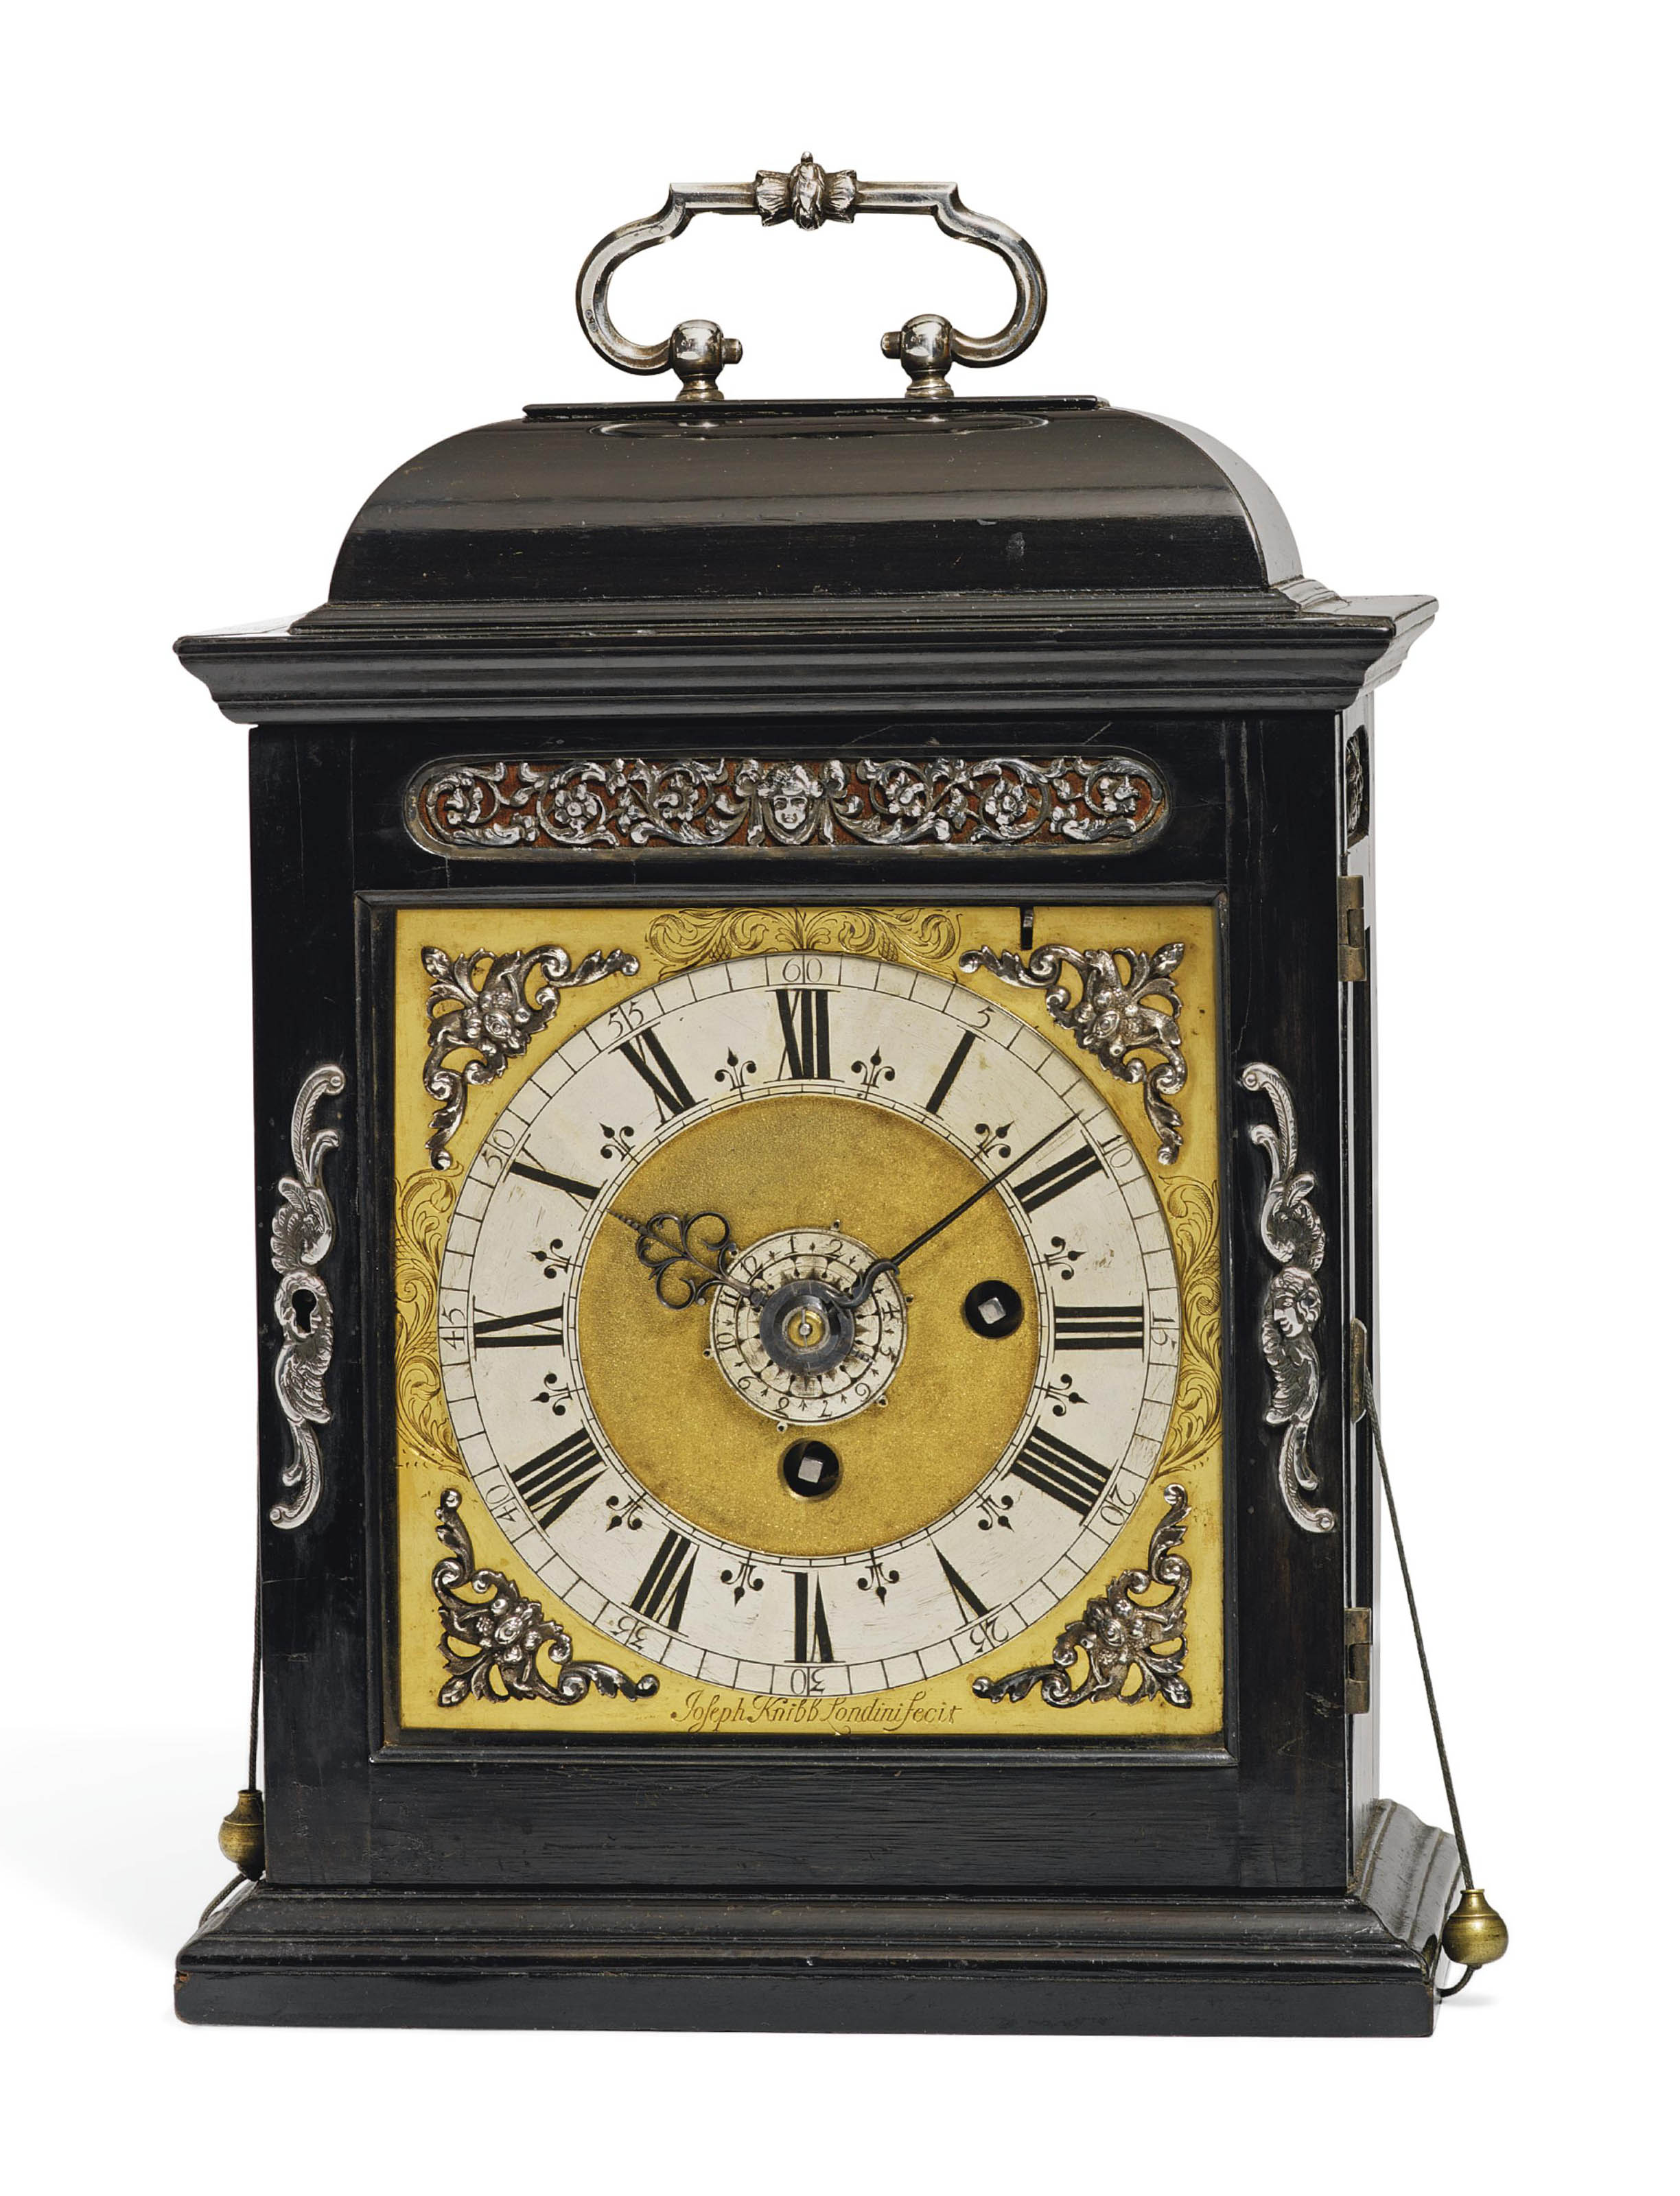 A CHARLES II SILVER-MOUNTED EBONY-VENEERED EIGHT-DAY TIMEPIECE TABLE CLOCK WITH PULL QUARTER REPEAT AND ALARM